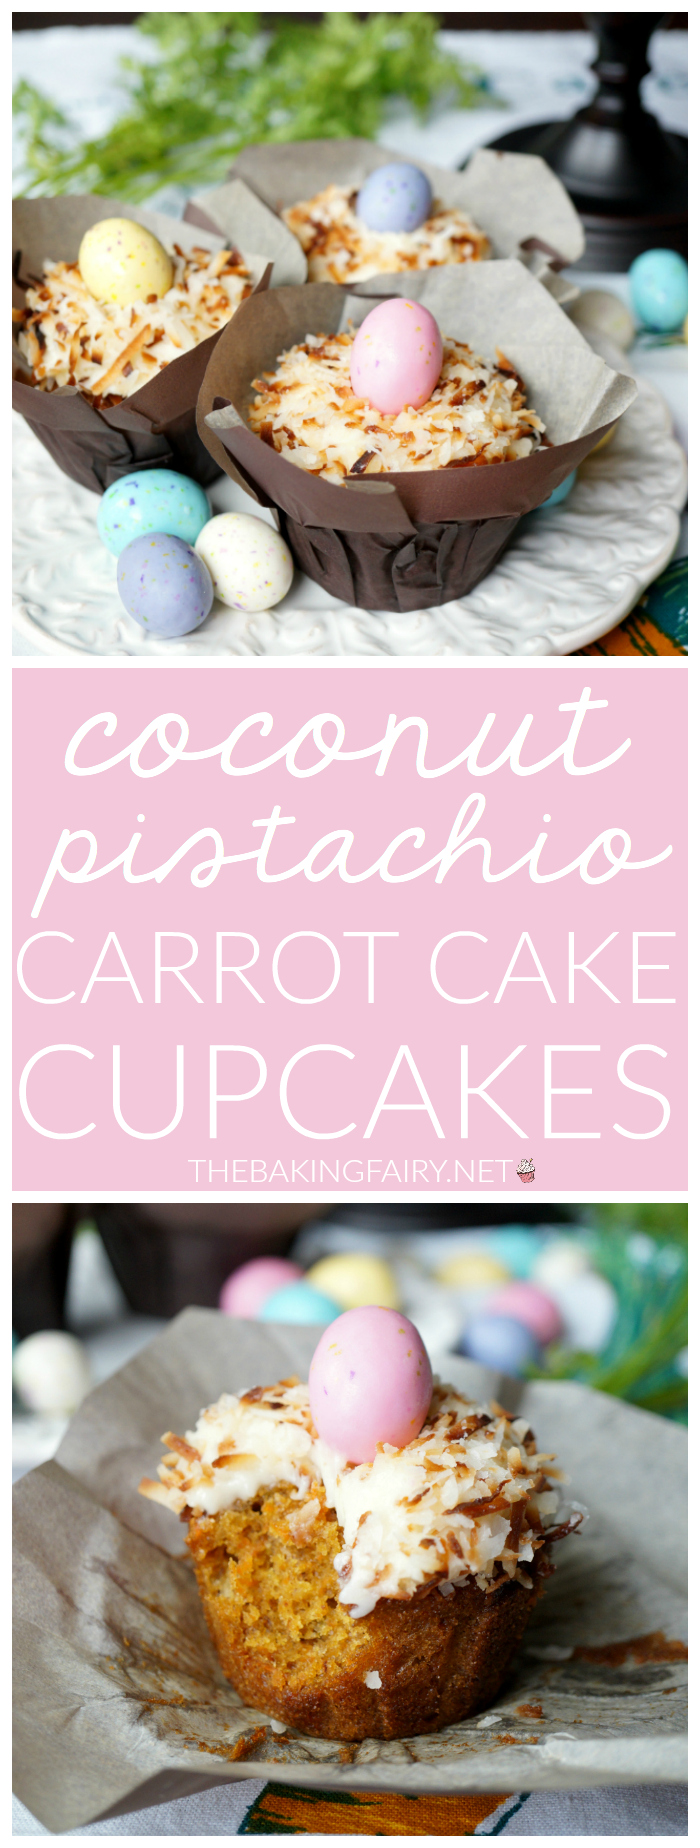 coconut pistachio carrot cake cupcakes | The Baking Fairy